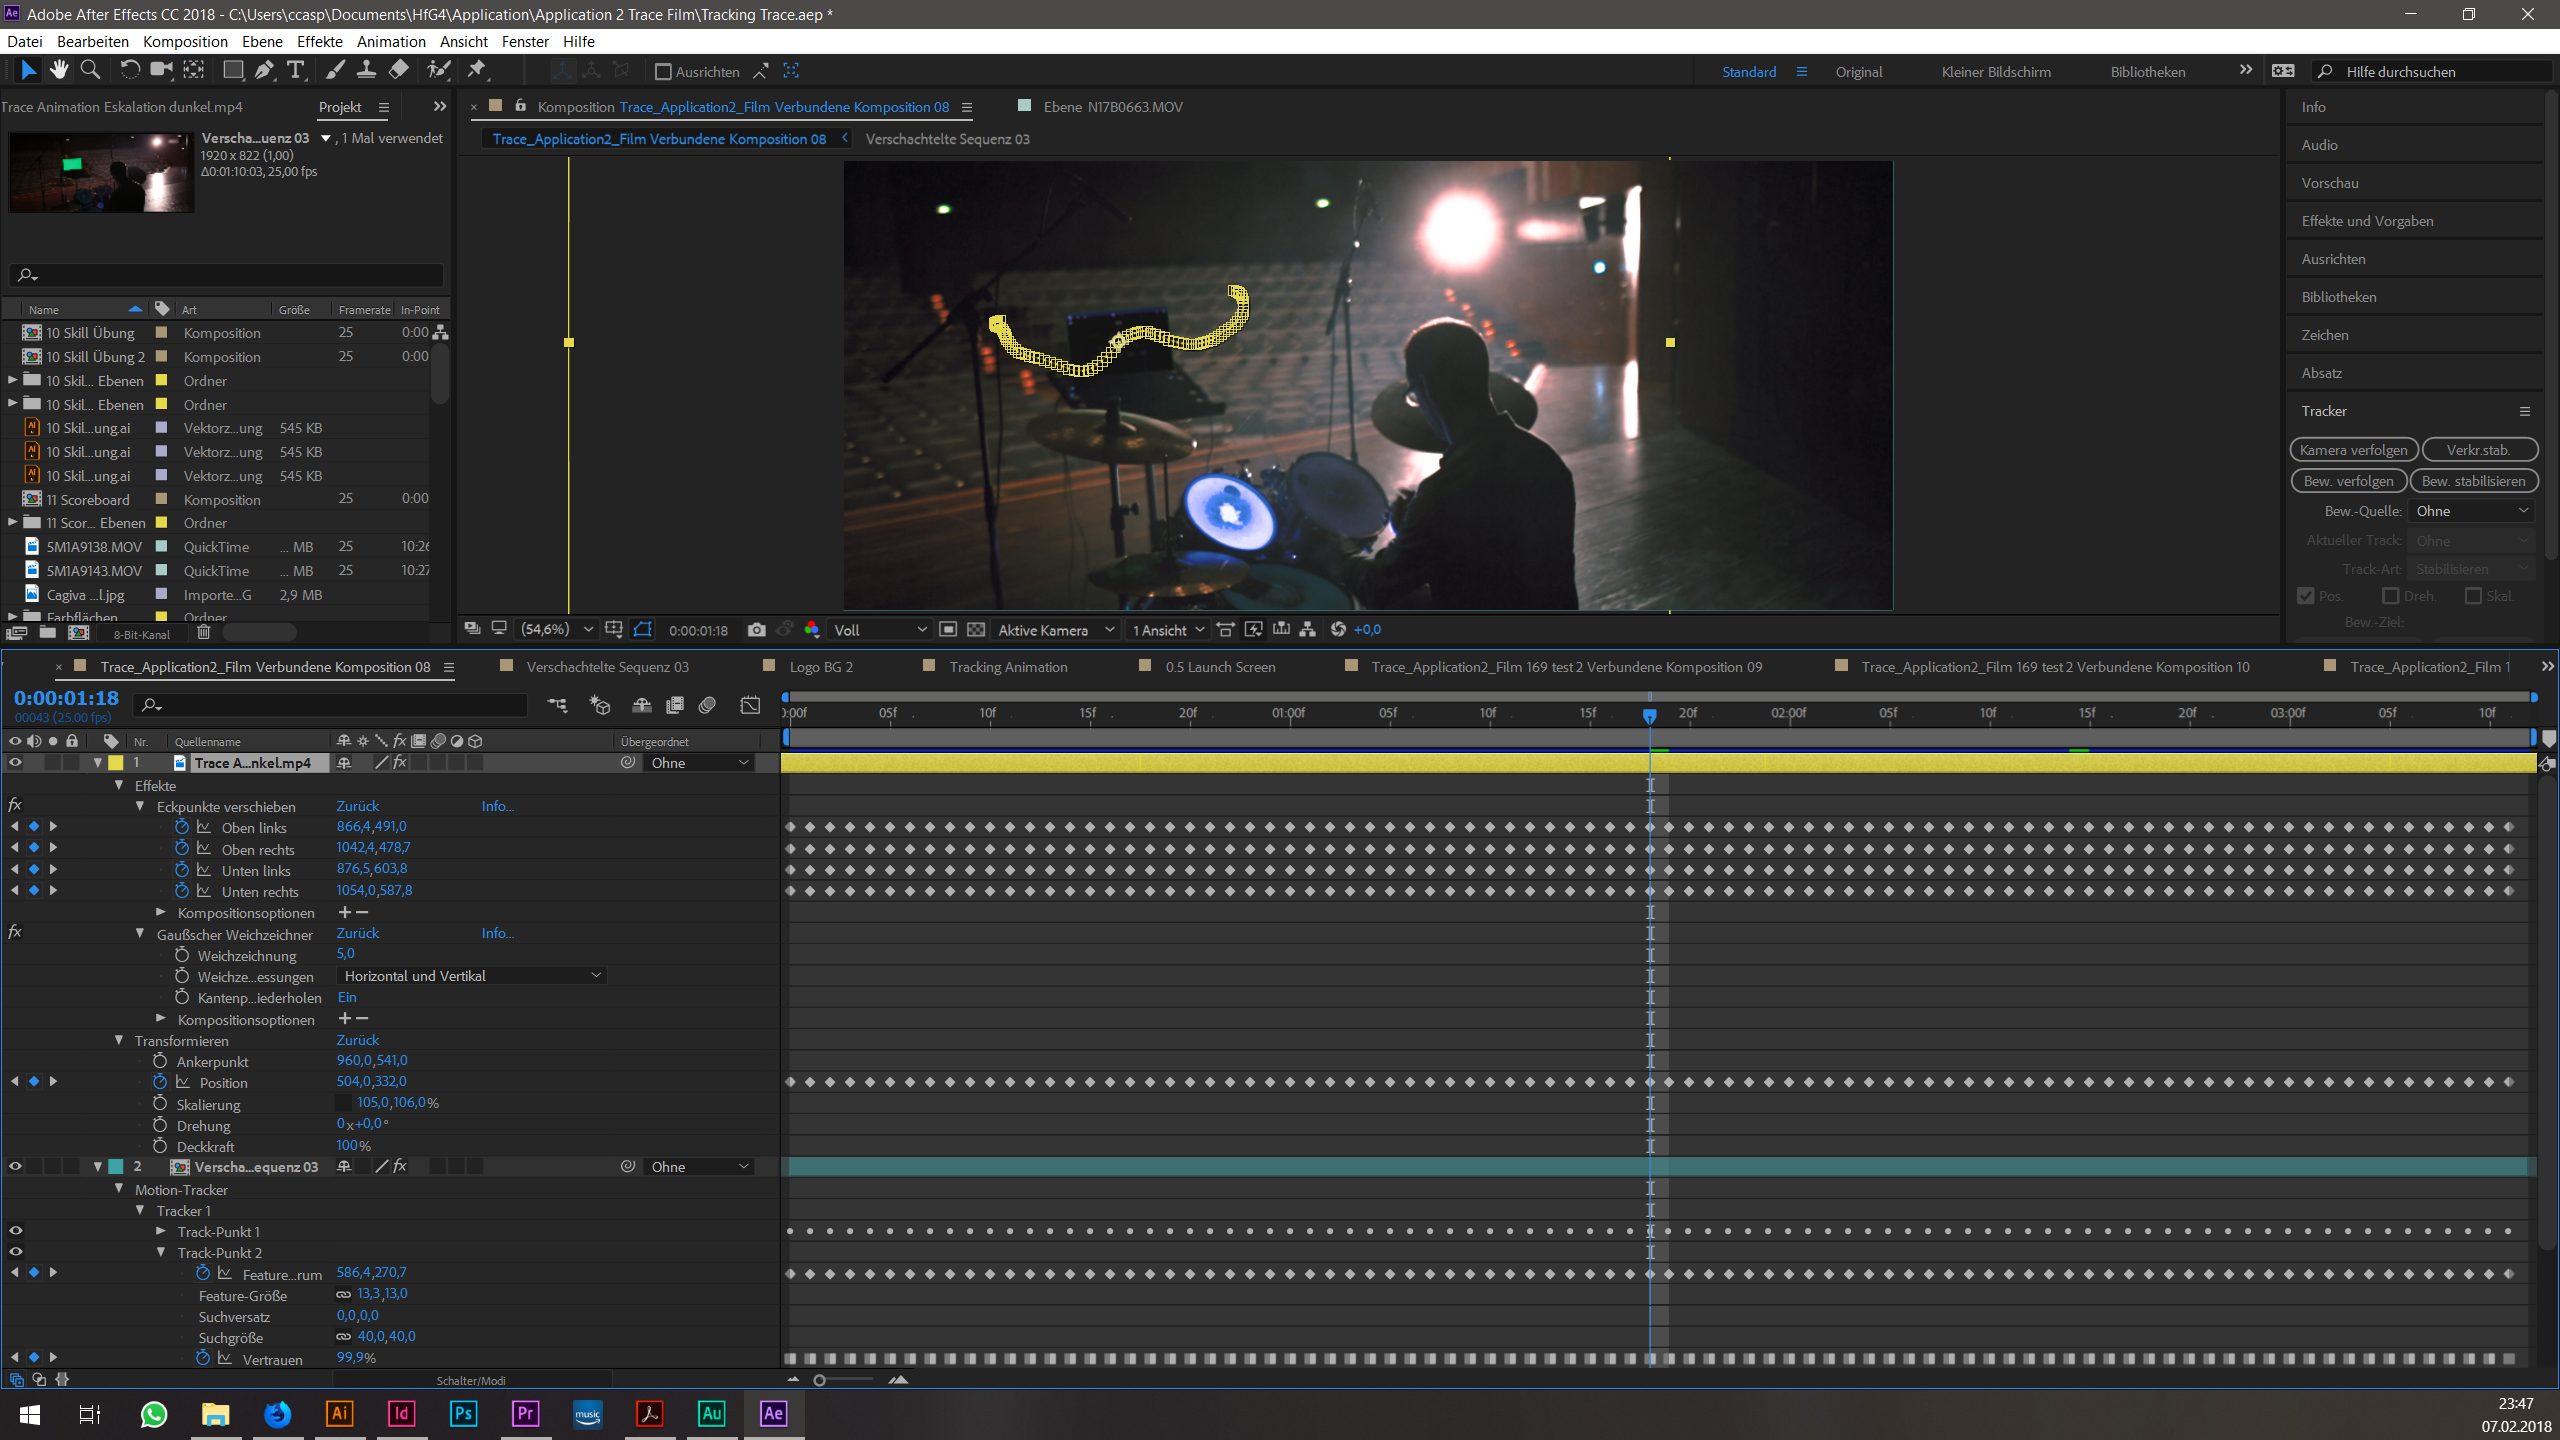 AfterEffects Tracking